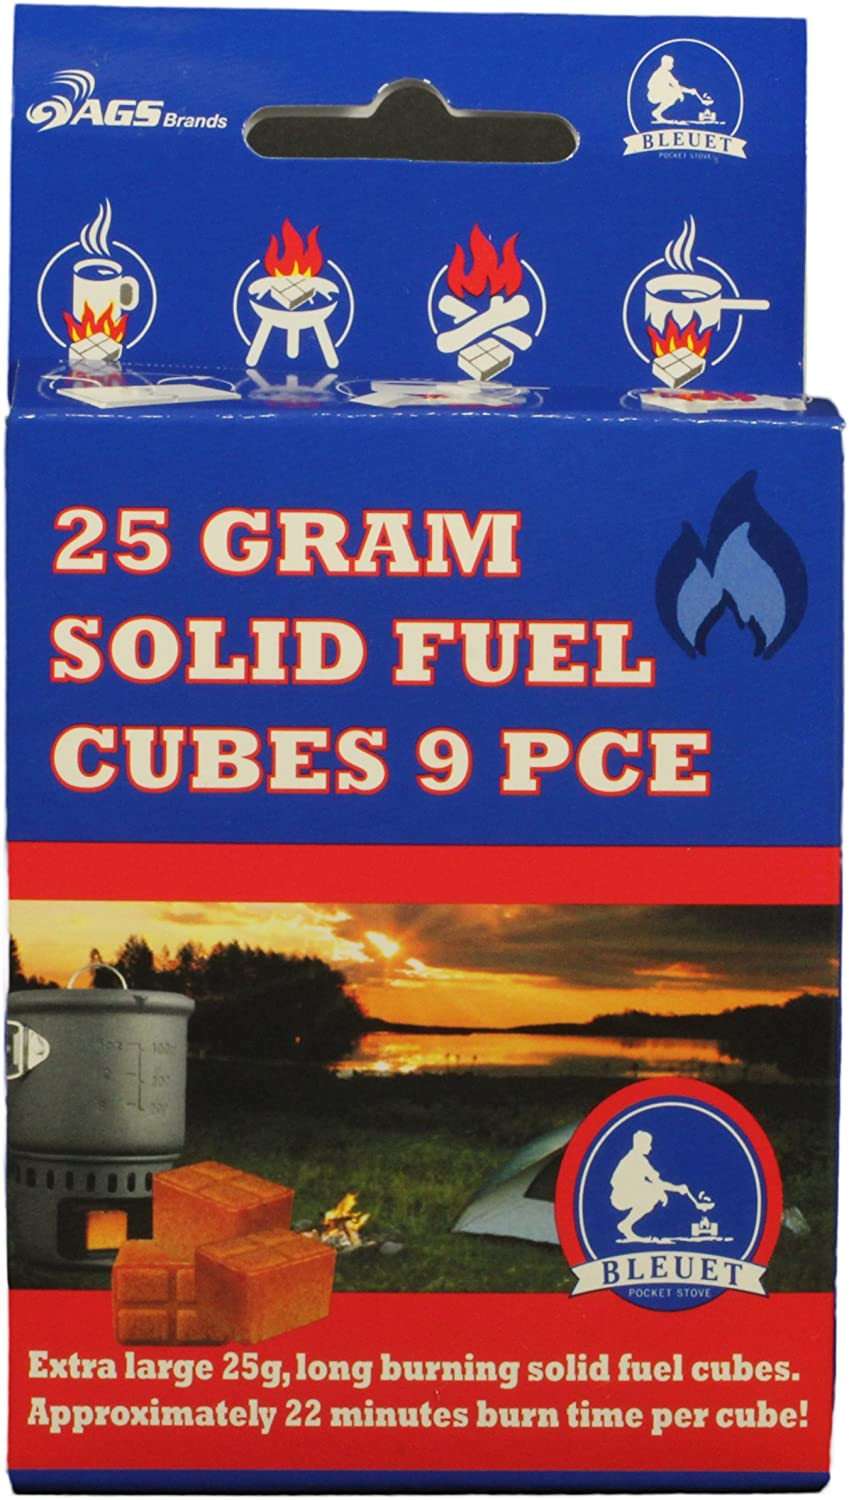 Bleuet Brand Solid Clearance New York Mall SALE Limited time 25gm Cubes Fuel